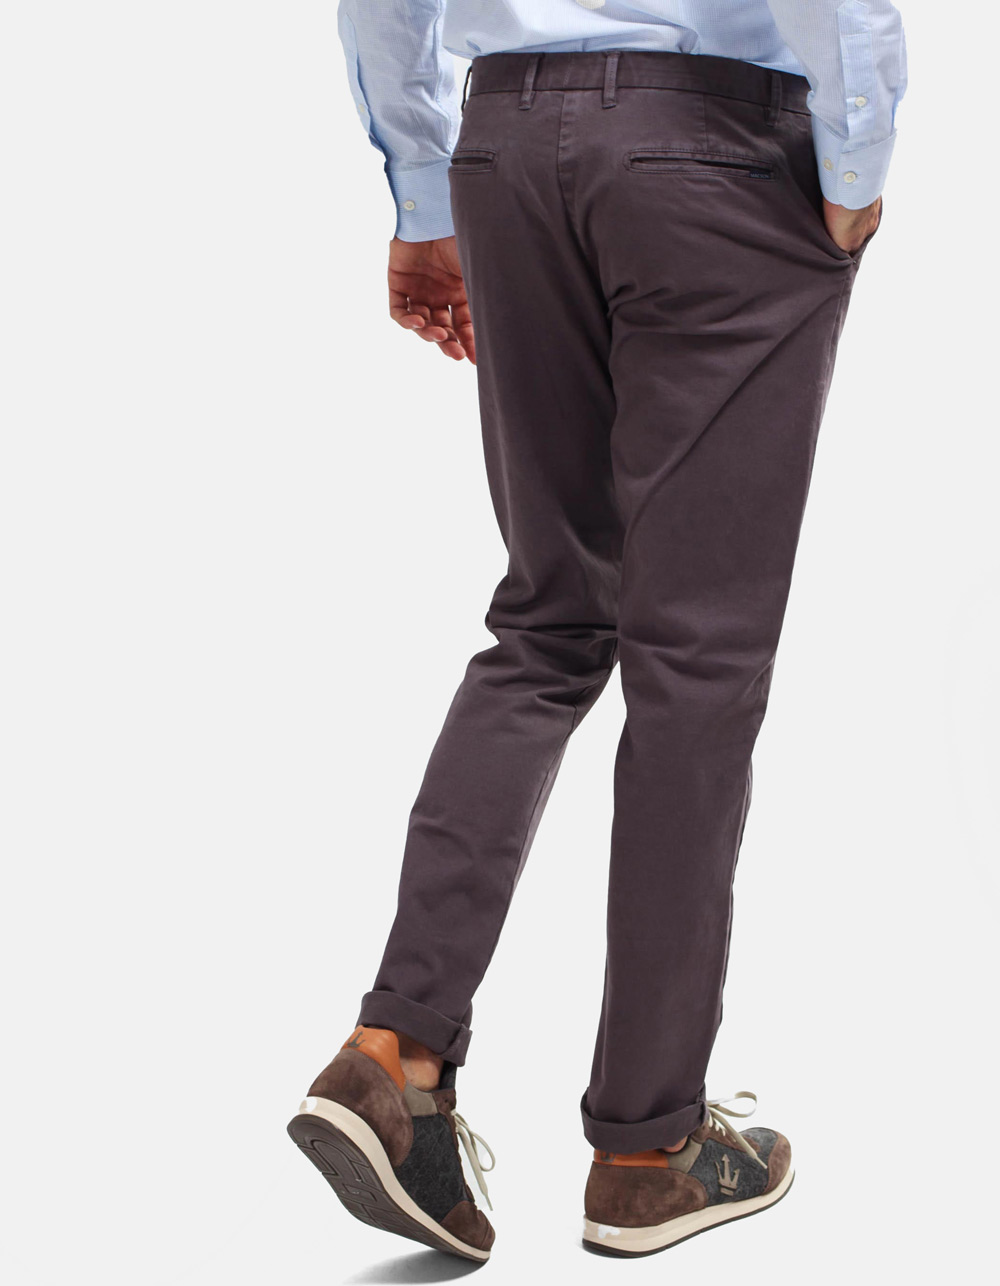 Grey chinos trousers - Backside